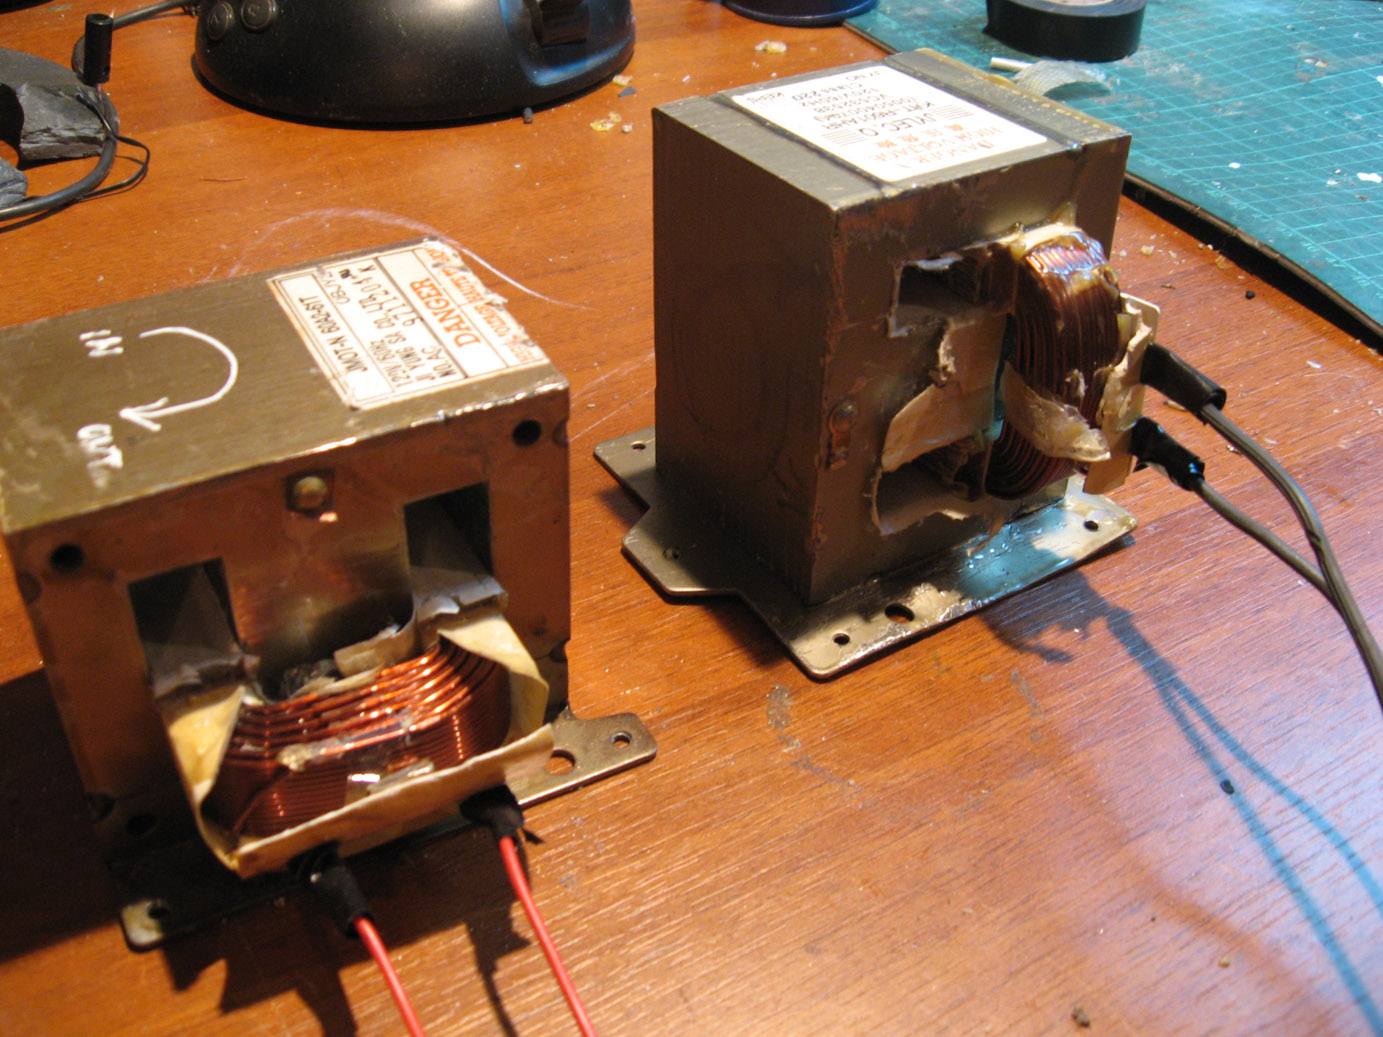 Diy Mods Hacks Projects And News Electronic Simple Tutorial Salvaging Rebuilding Microwave Transformers